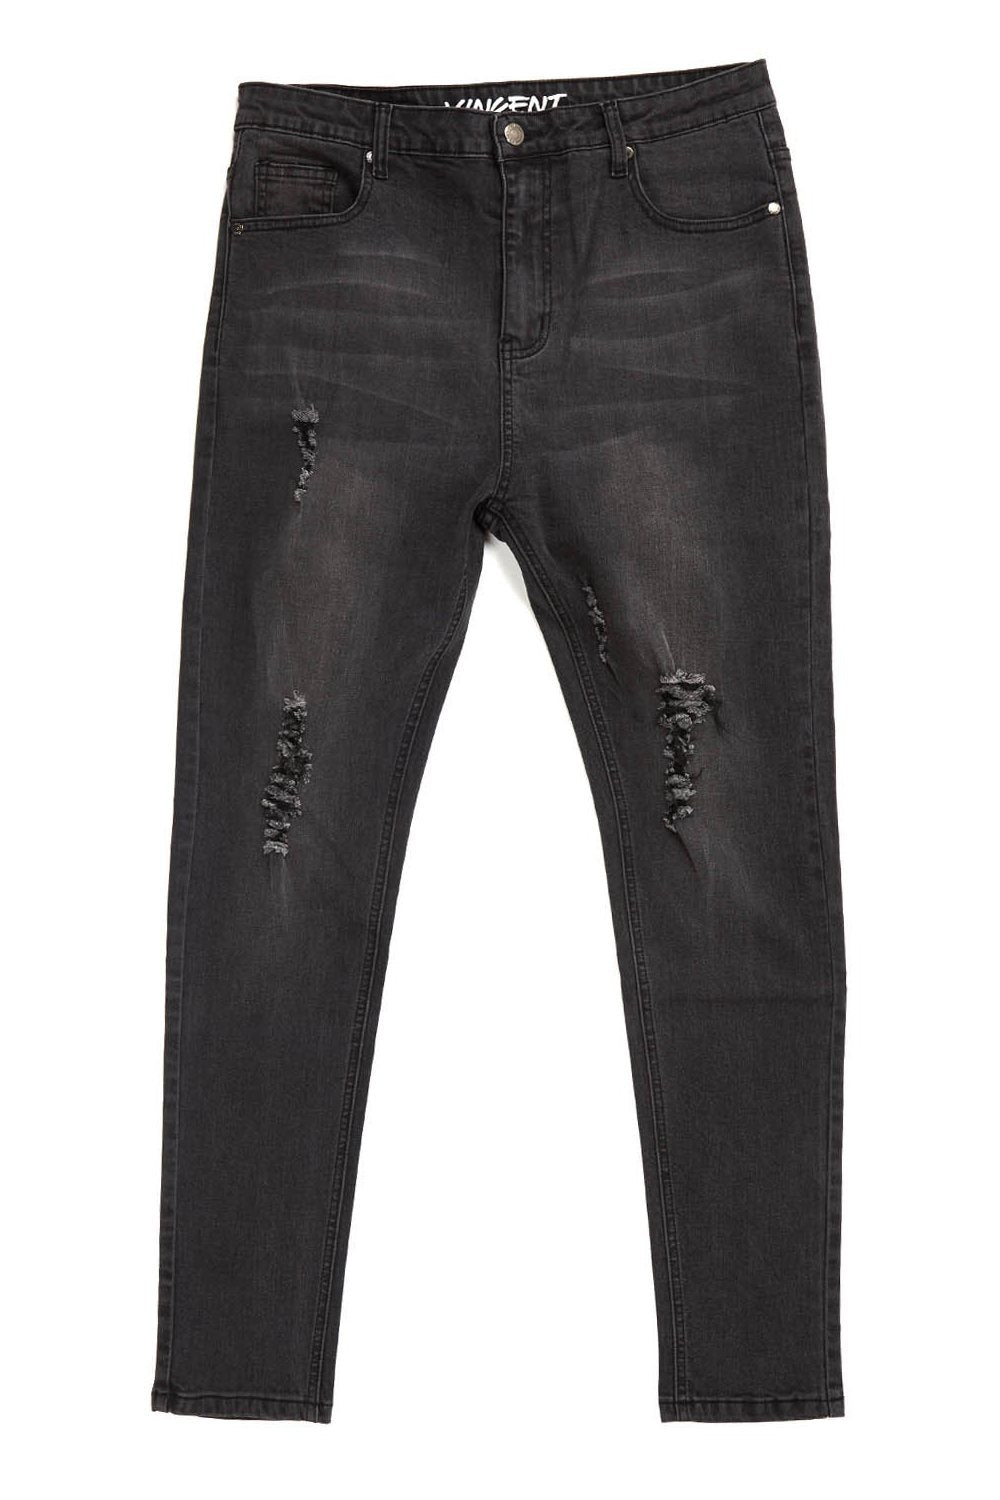 Always Rare Ripped Vincent Jeans - Black - 3